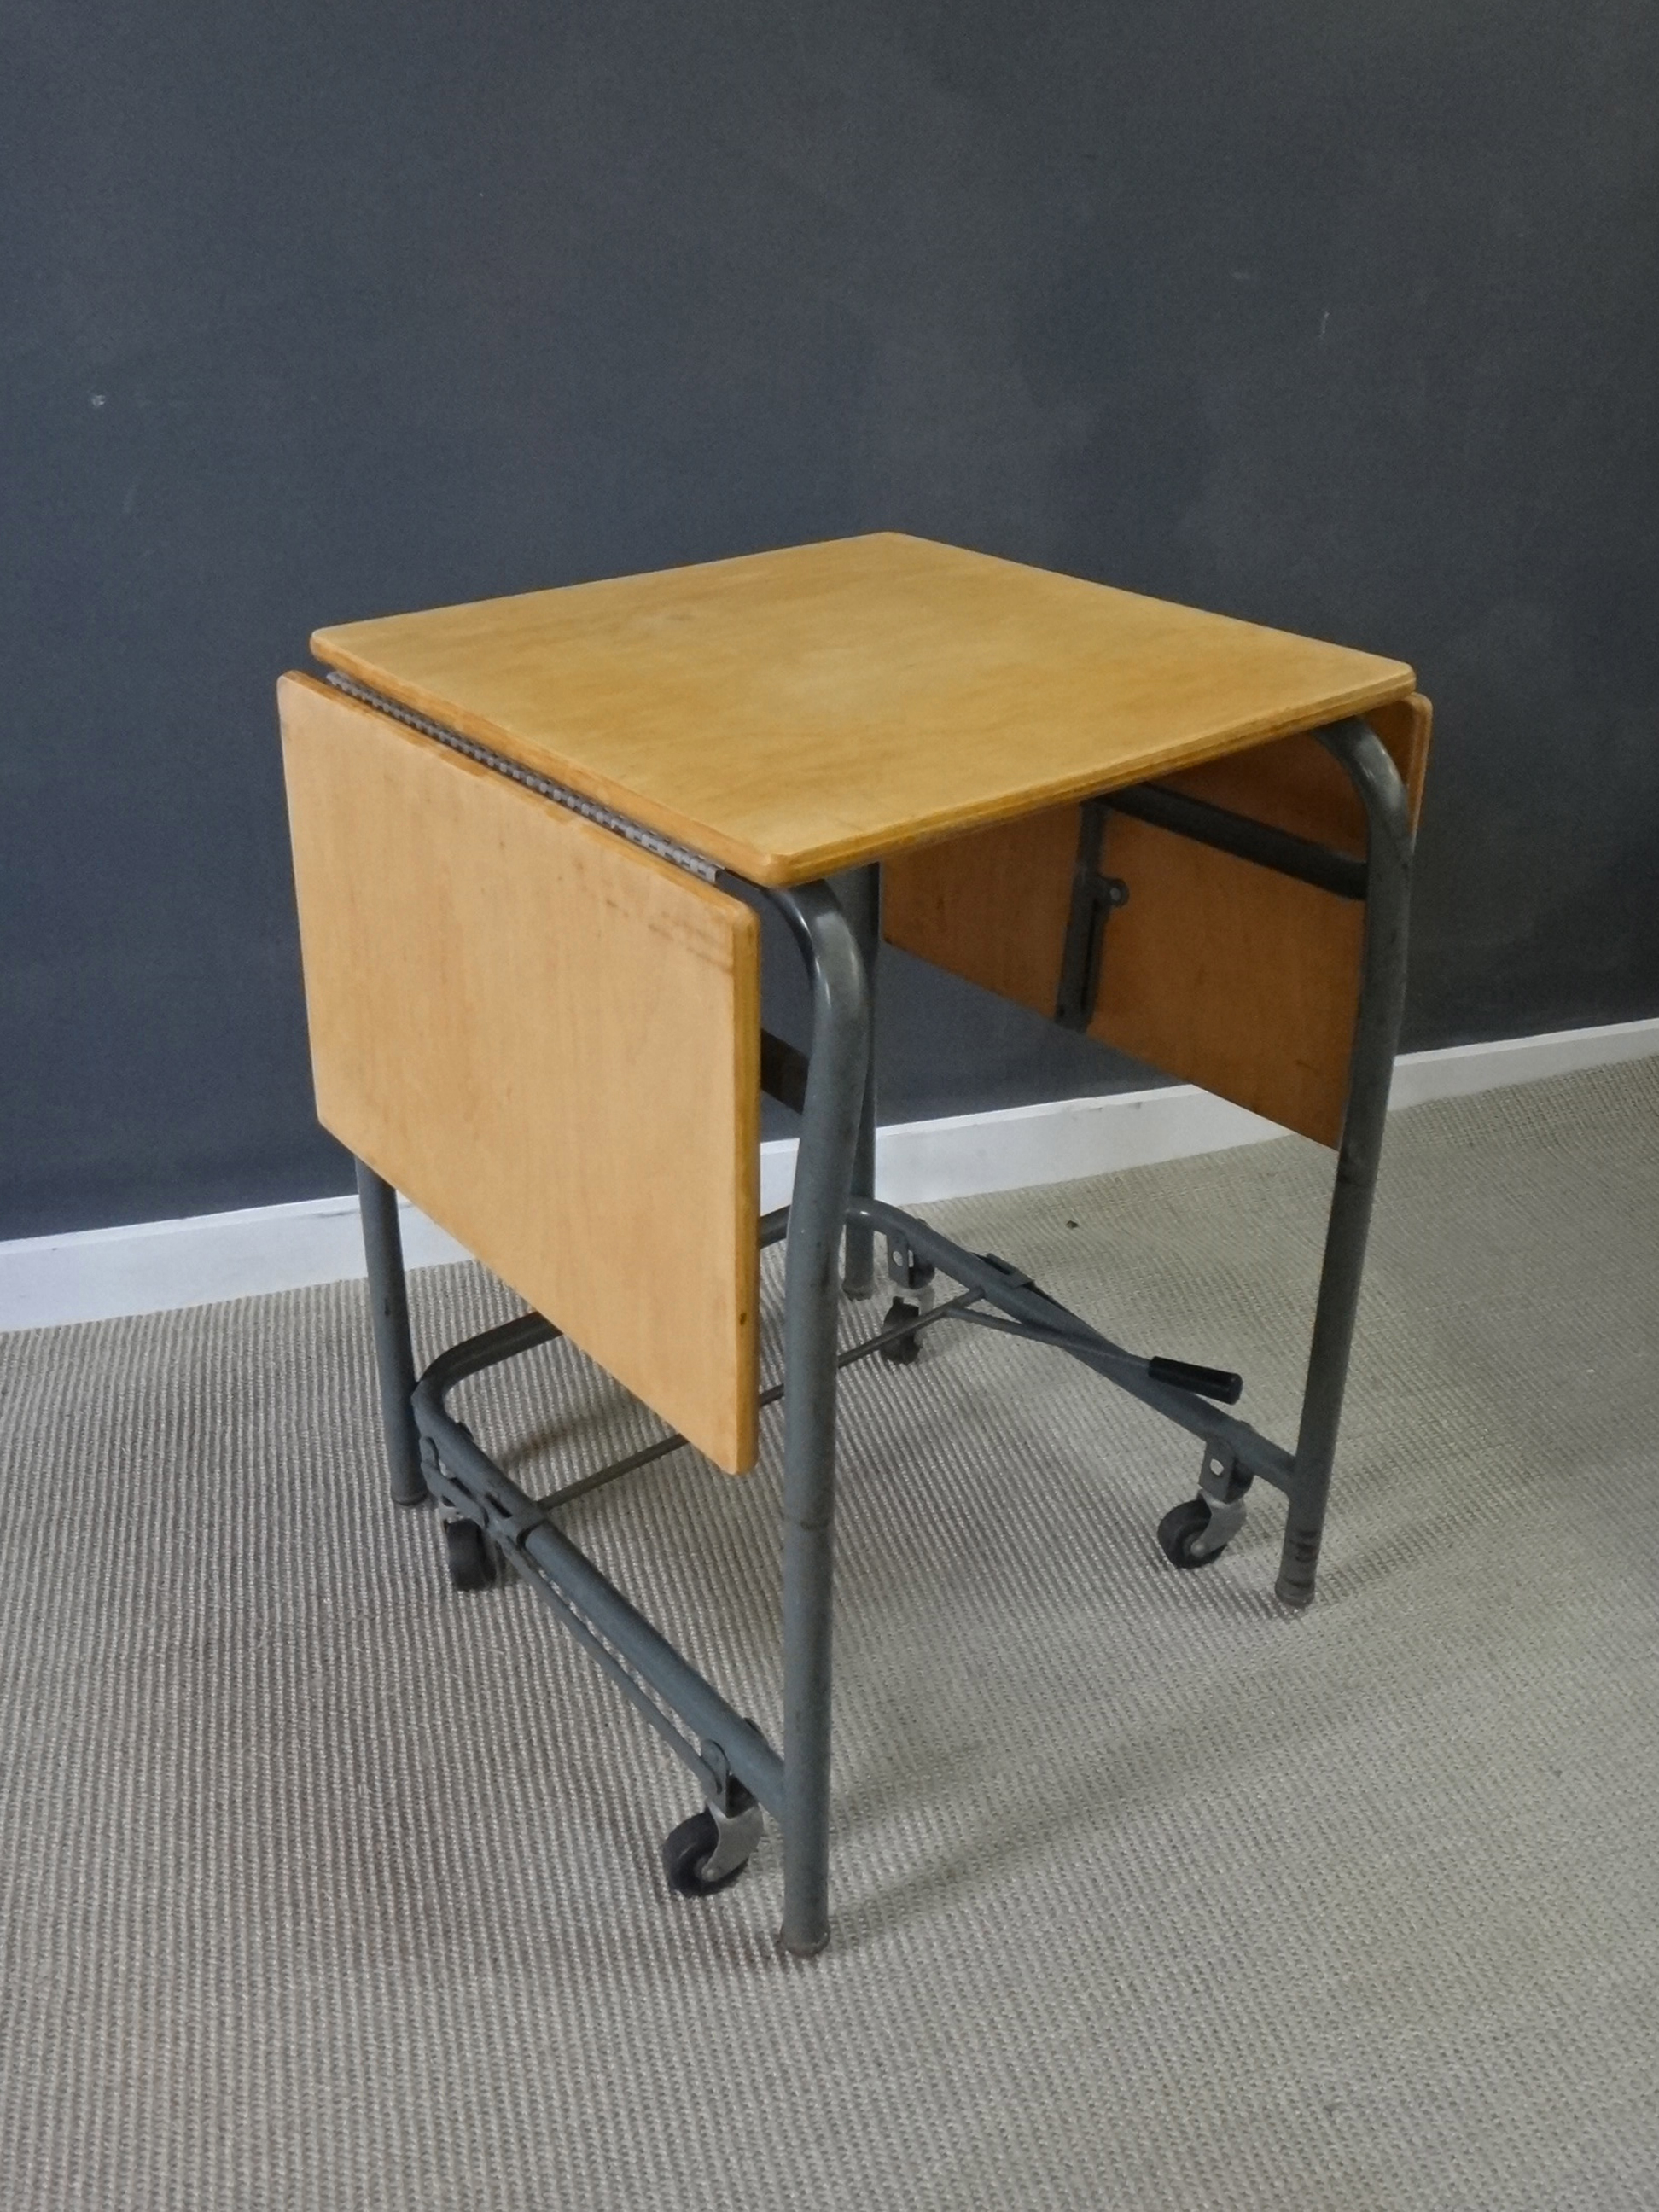 Vintage Wood & Metal Typing Stand